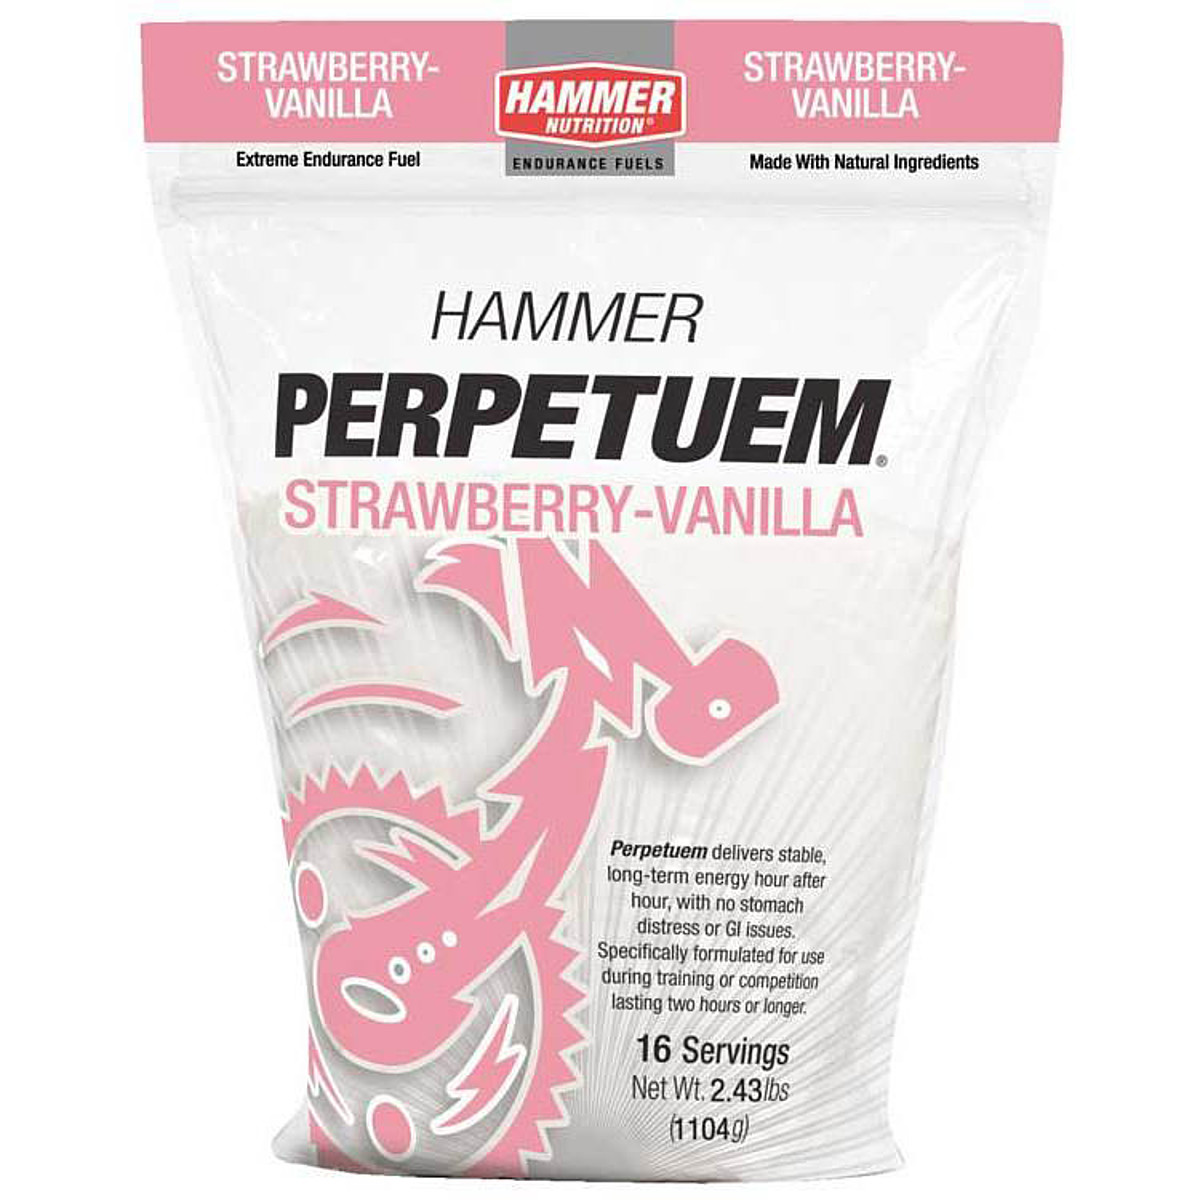 photo of a Hammer Nutrition food/drink